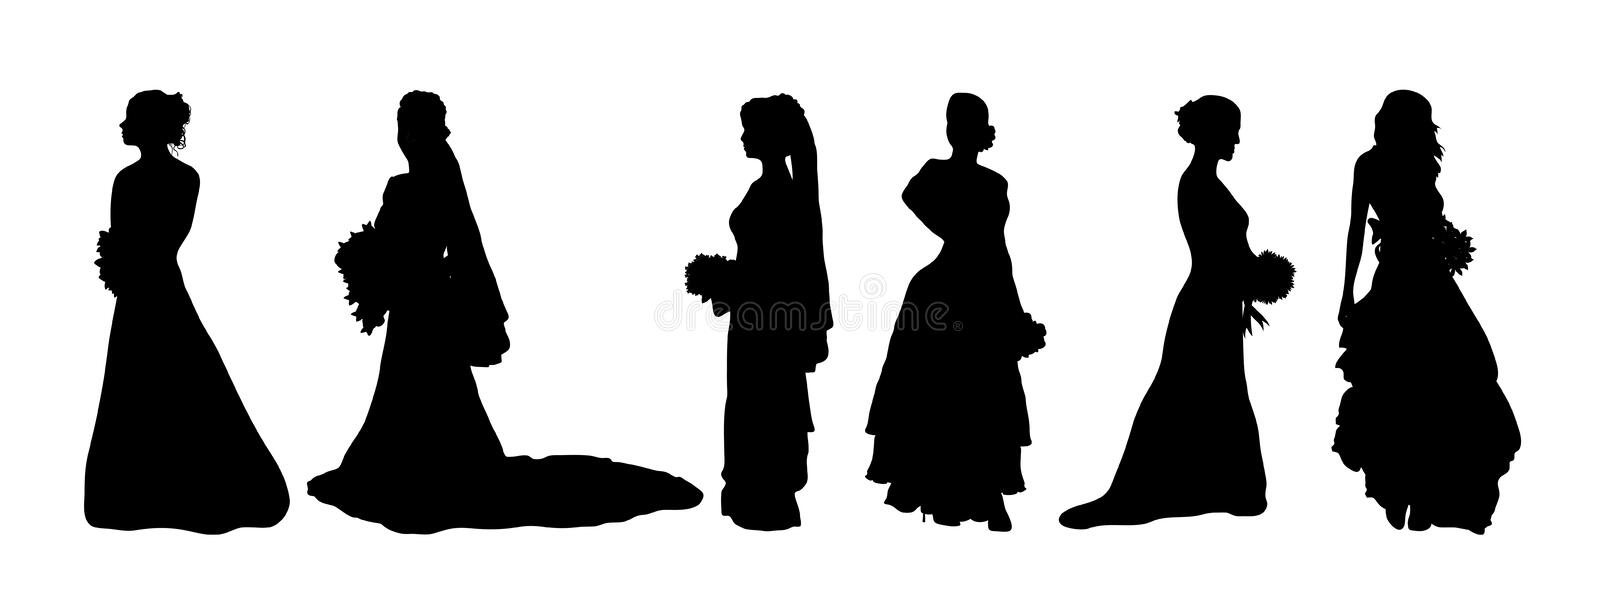 Bride Silhouettes royalty free illustration